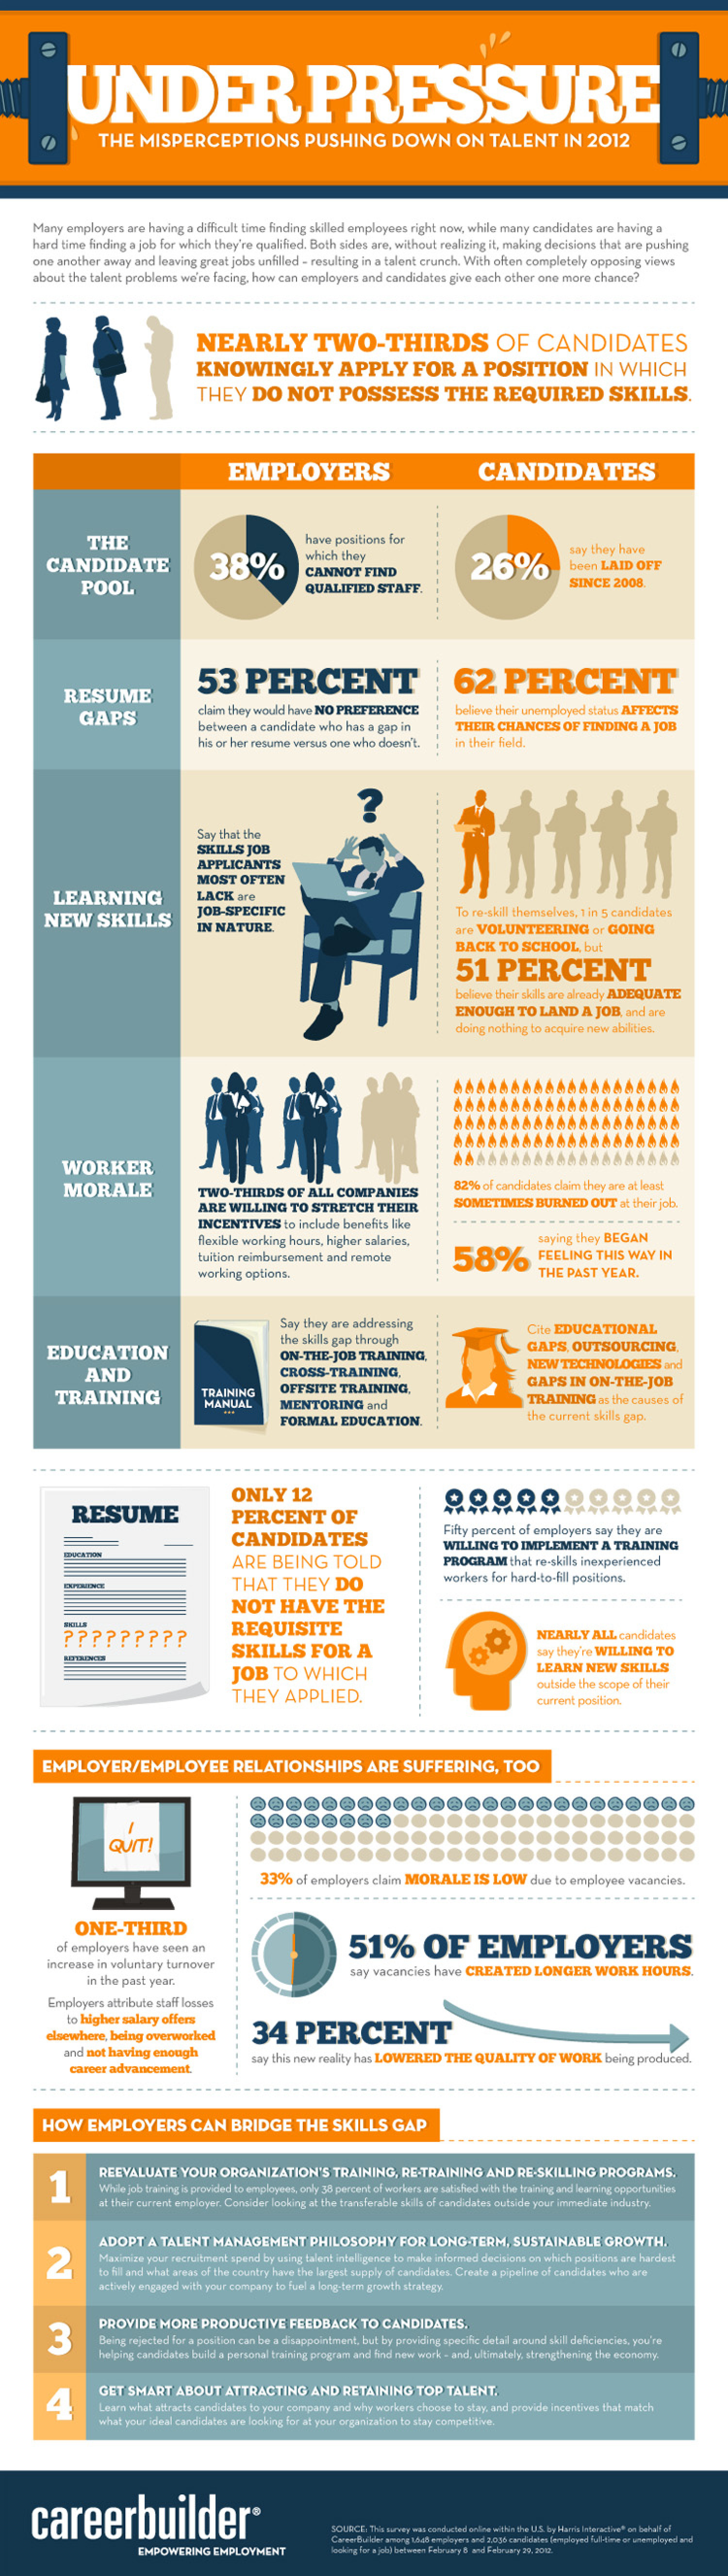 Under Pressure: The Misperceptions Pushing Down on Talent in 2012 Infographic